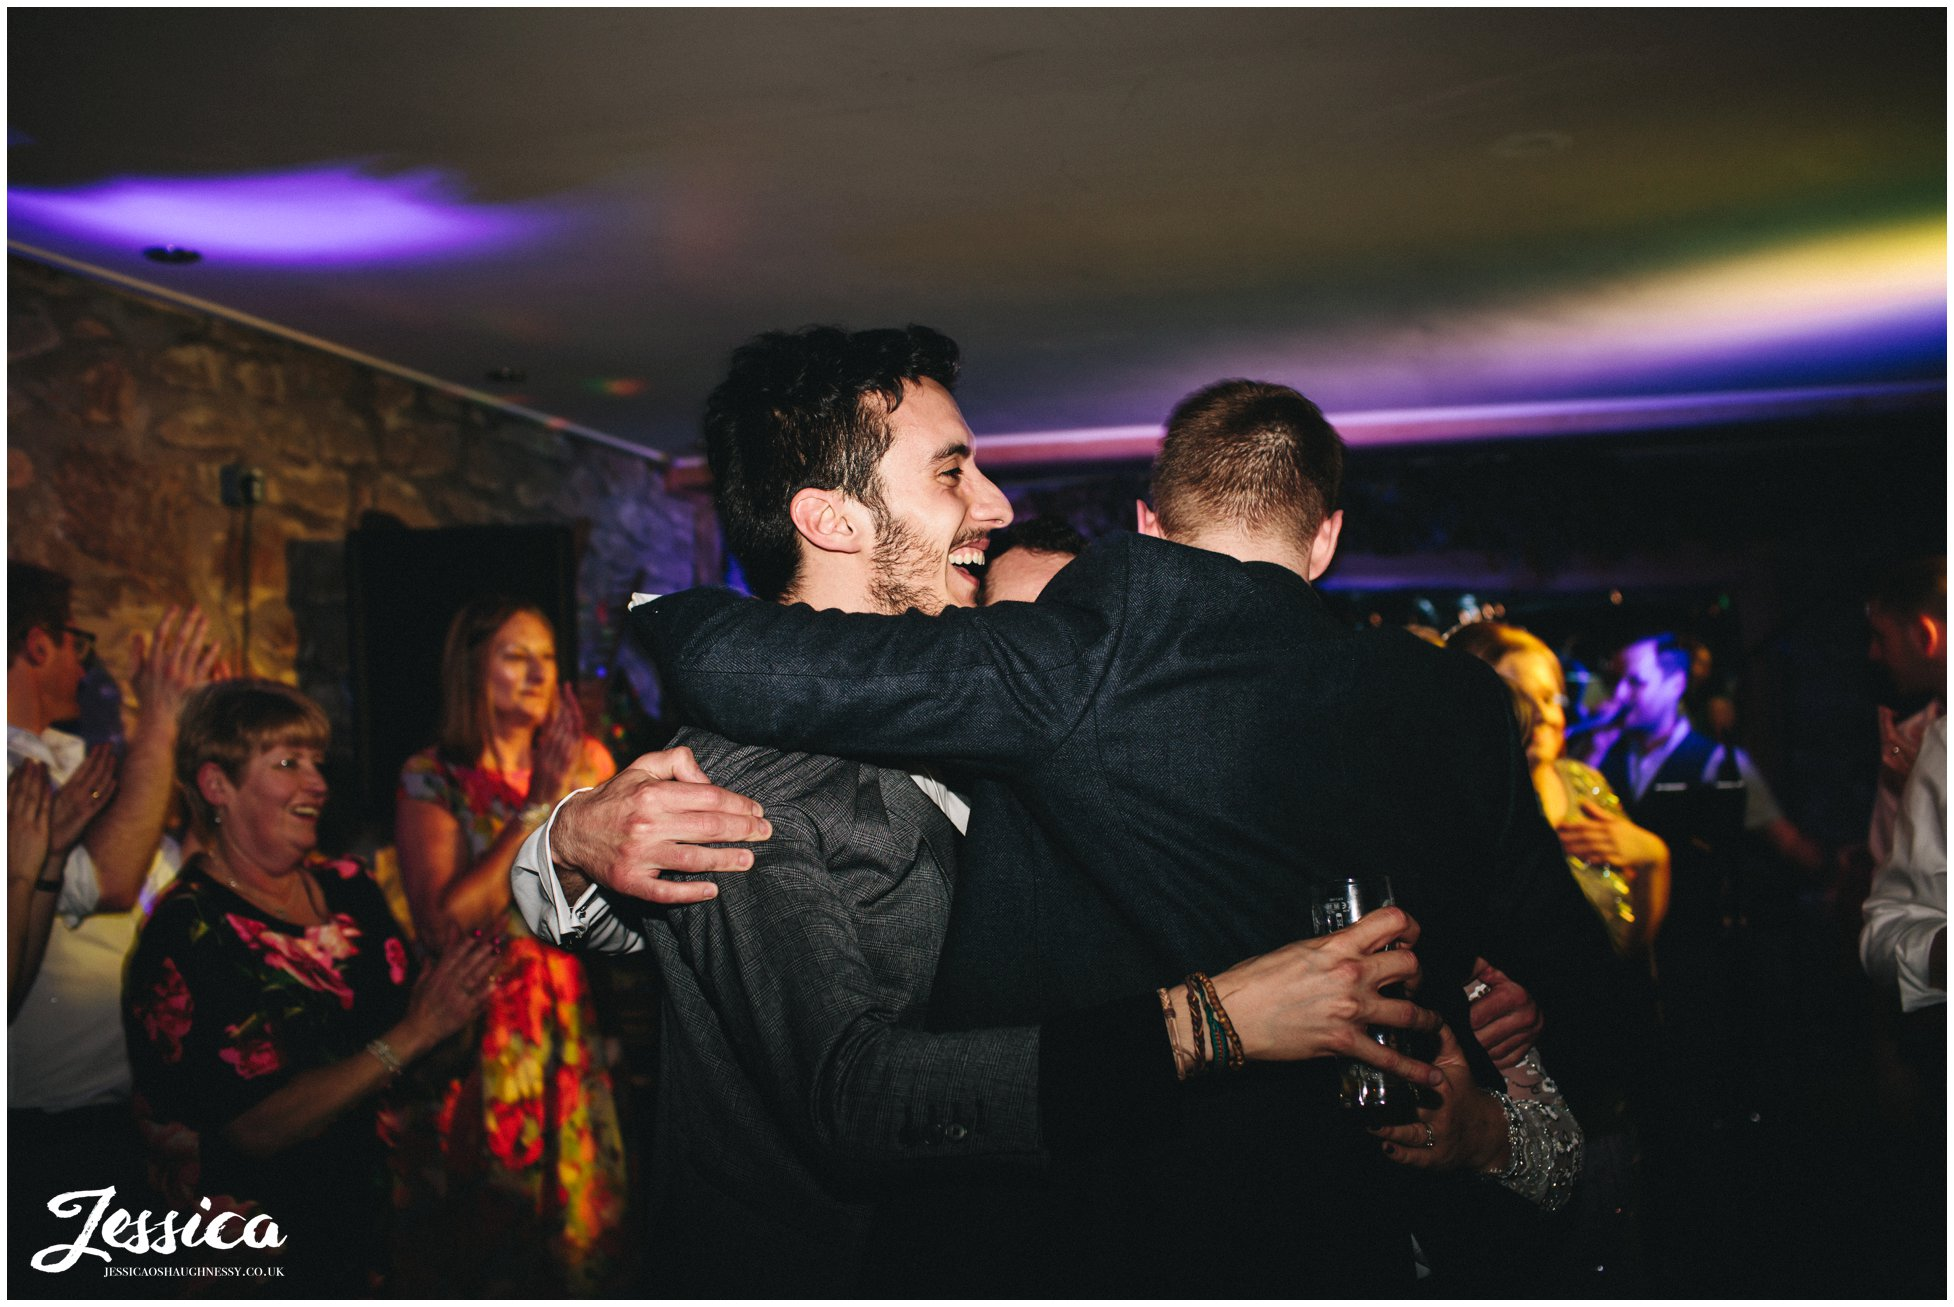 guest hugs the groom on the dancefloor at tower hill barns in wrexham